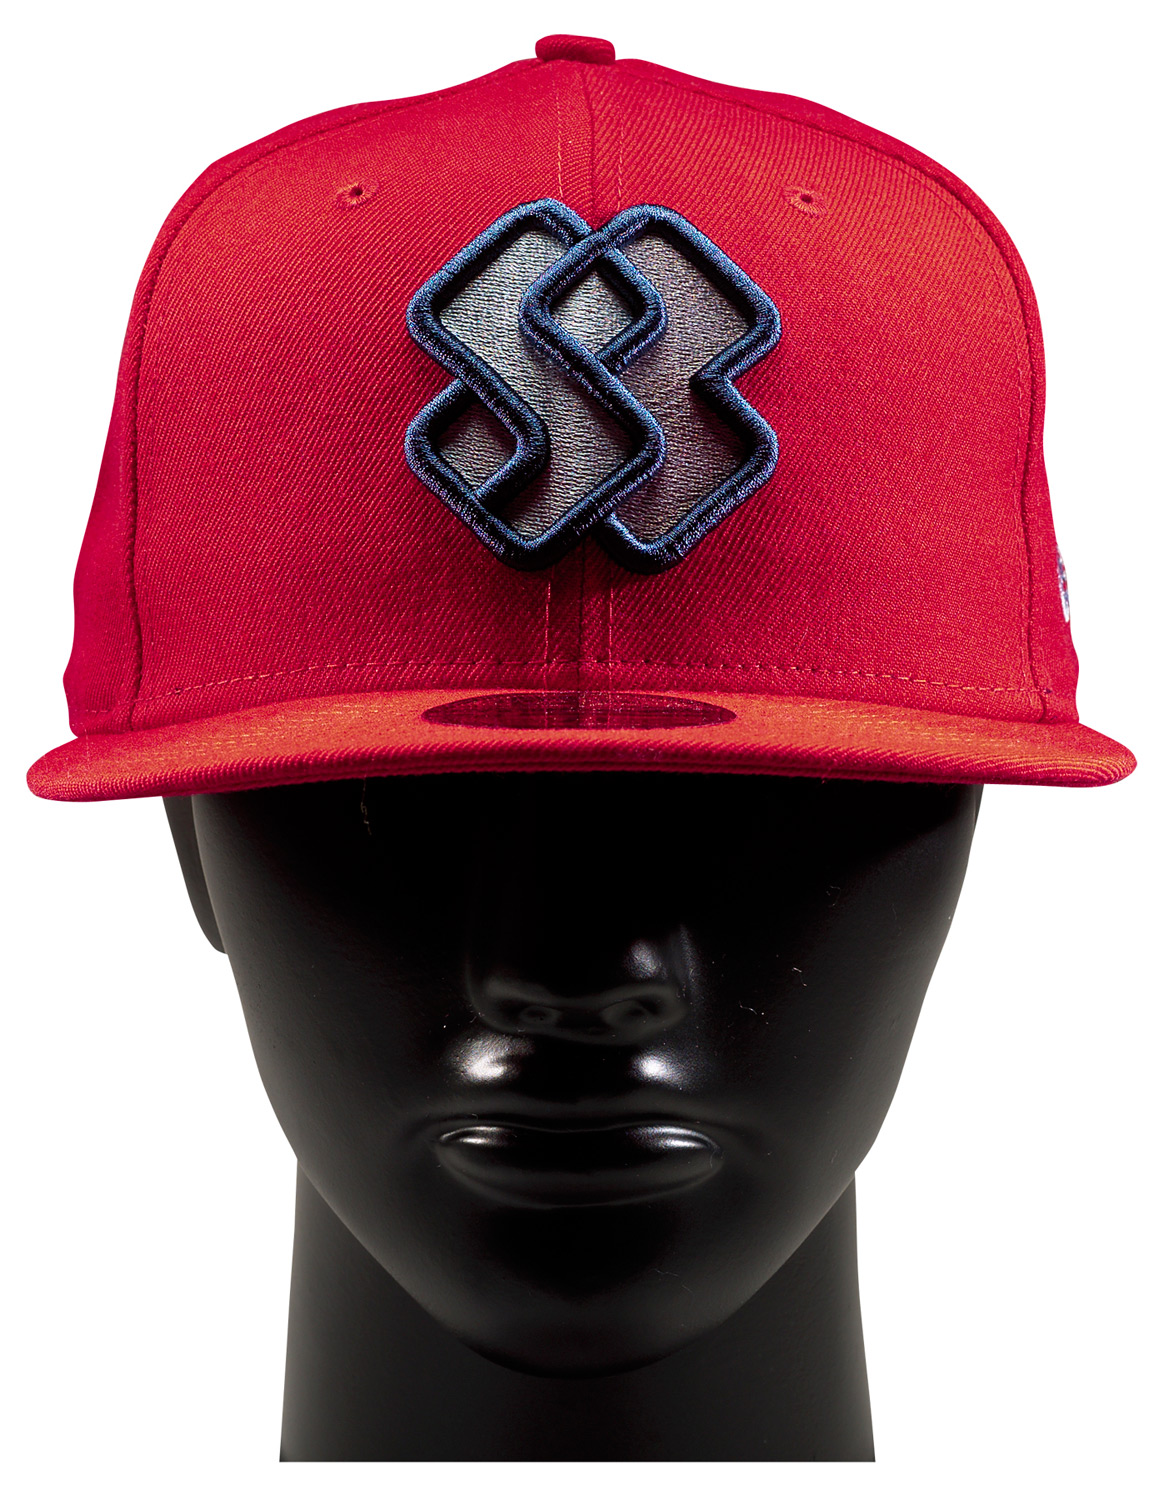 Key Features of the Special Blend Icon New Era Cap: 59FIFTY 100% wool for colors: Blackout and Red Army 85% Acrylic 15% Wool for colors: Oxy cotton - $16.95